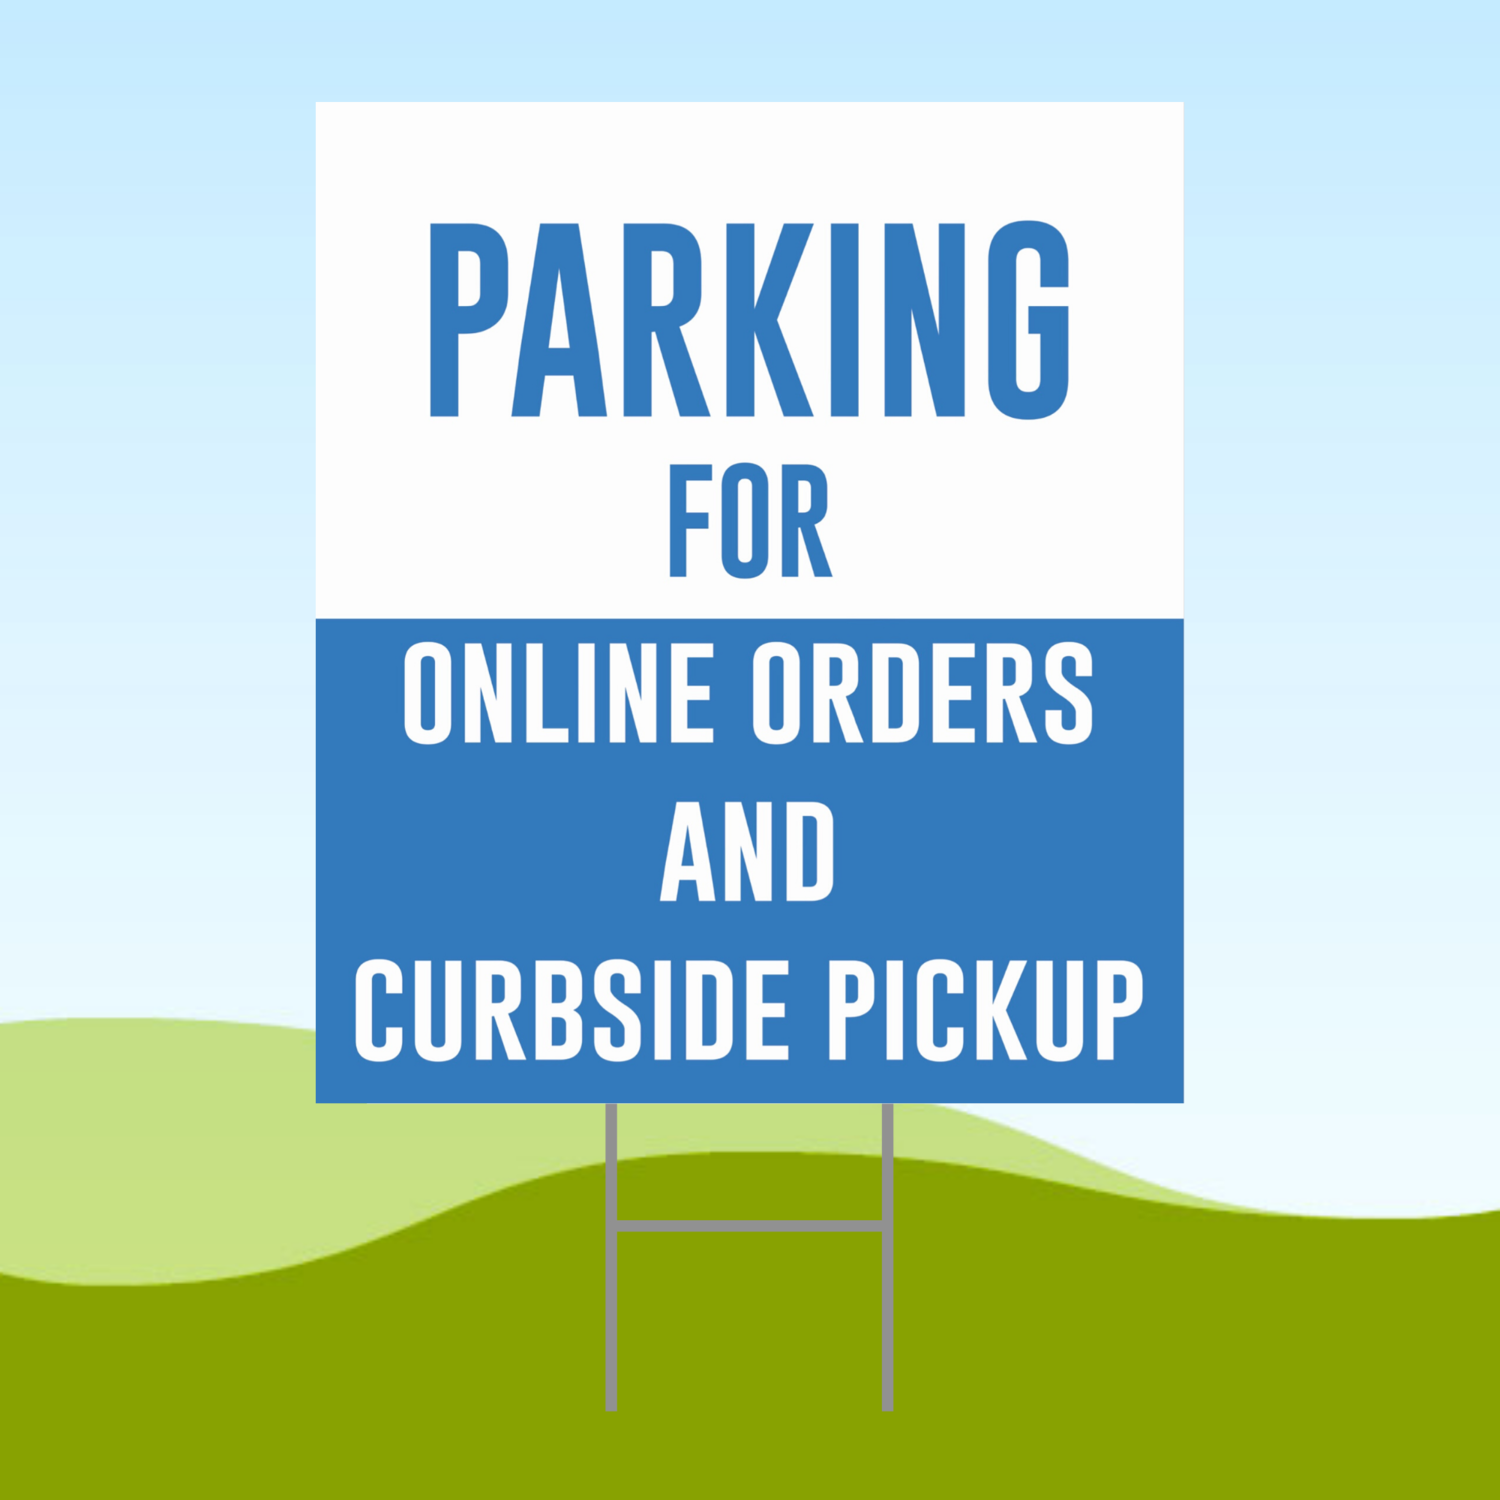 Parking For Online Orders 18x24 Yard Sign WITH STAKE Corrugated Plastic Bandit